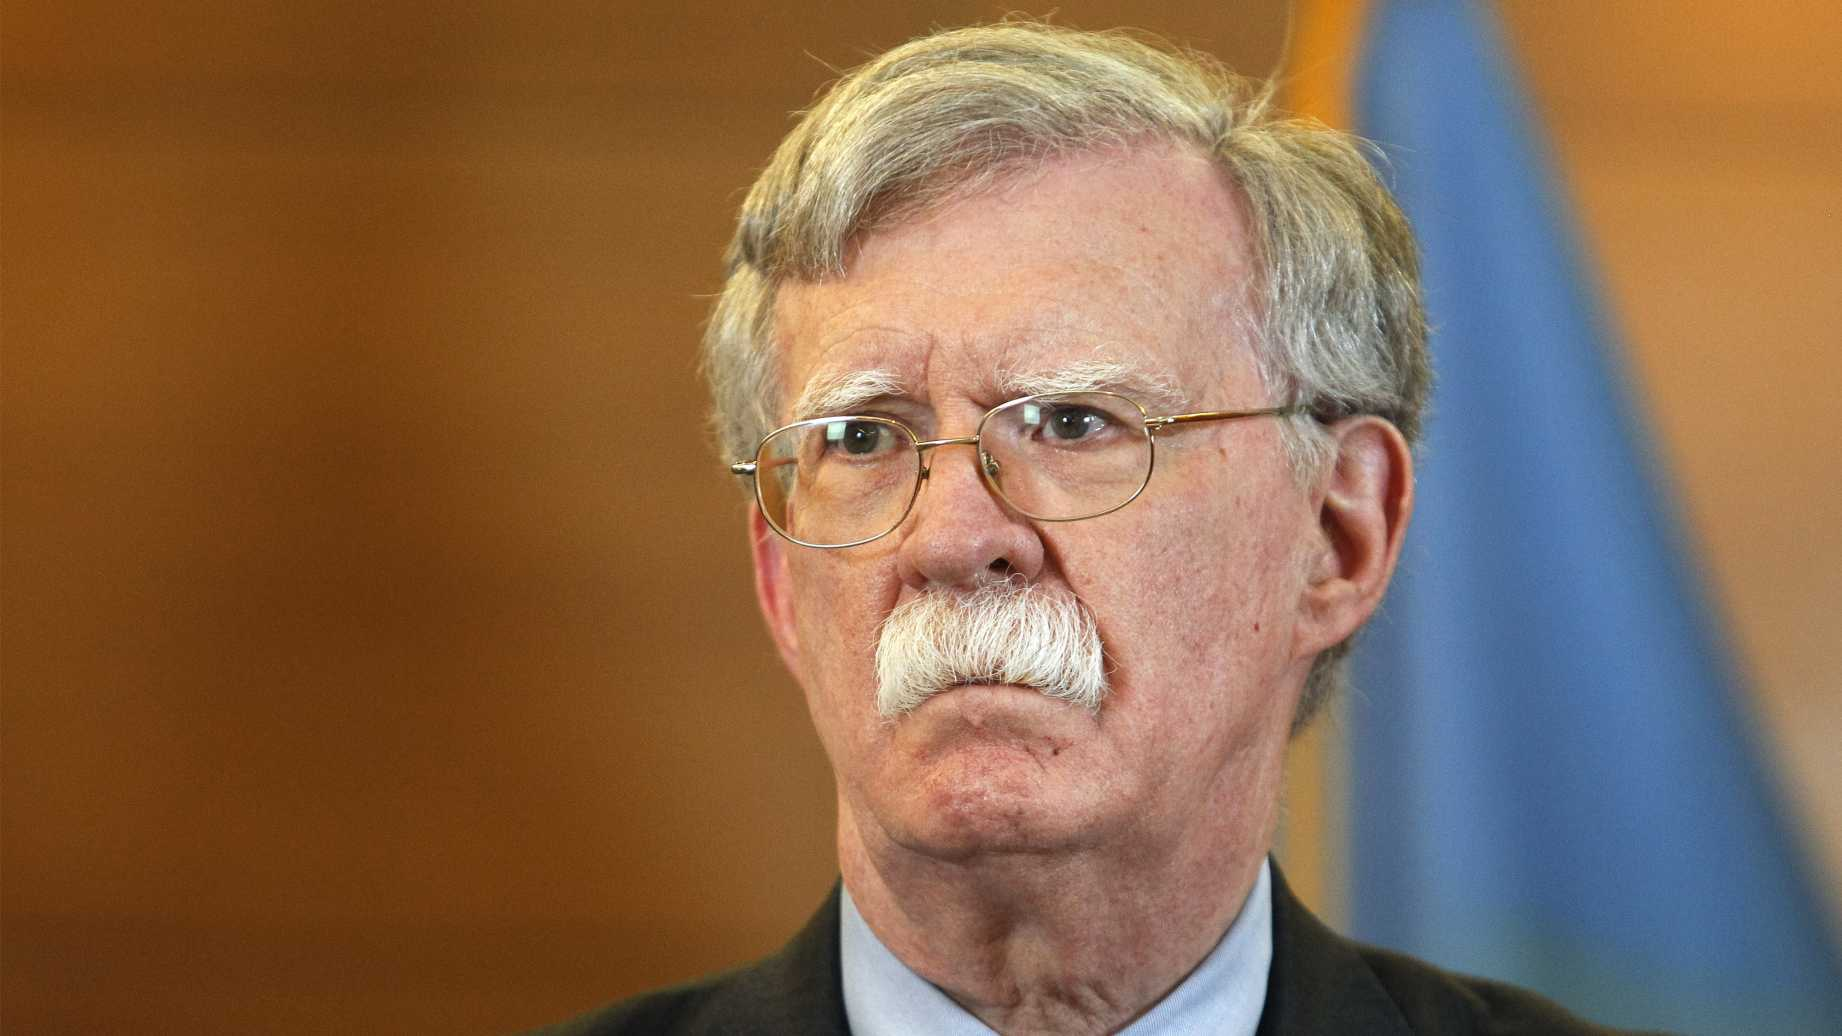 Bolton Agrees to Give House Democrats Audible Version of His New Book